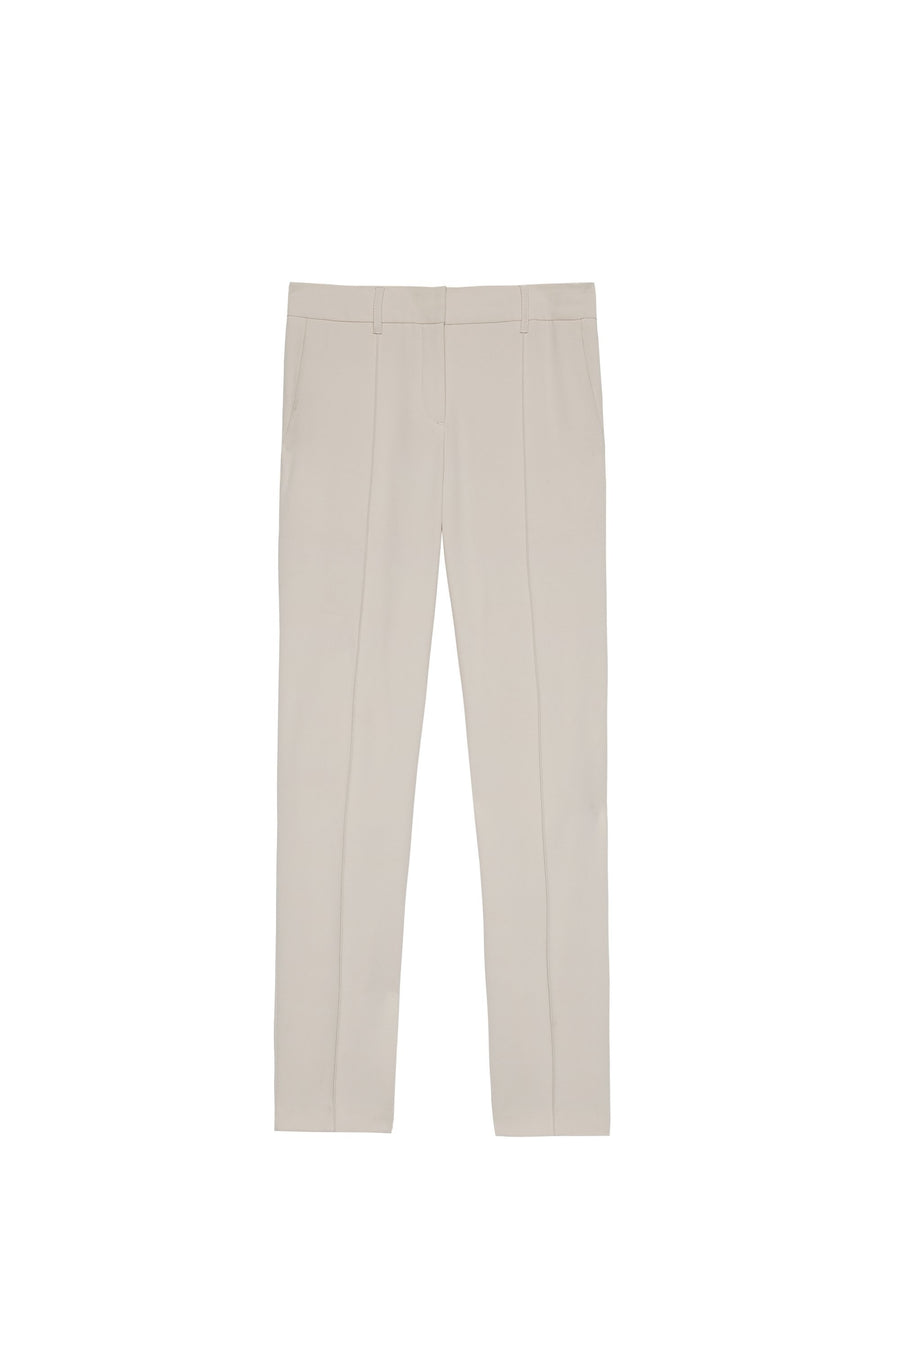 BARTH TROUSERS - CREAM Trousers Stylein